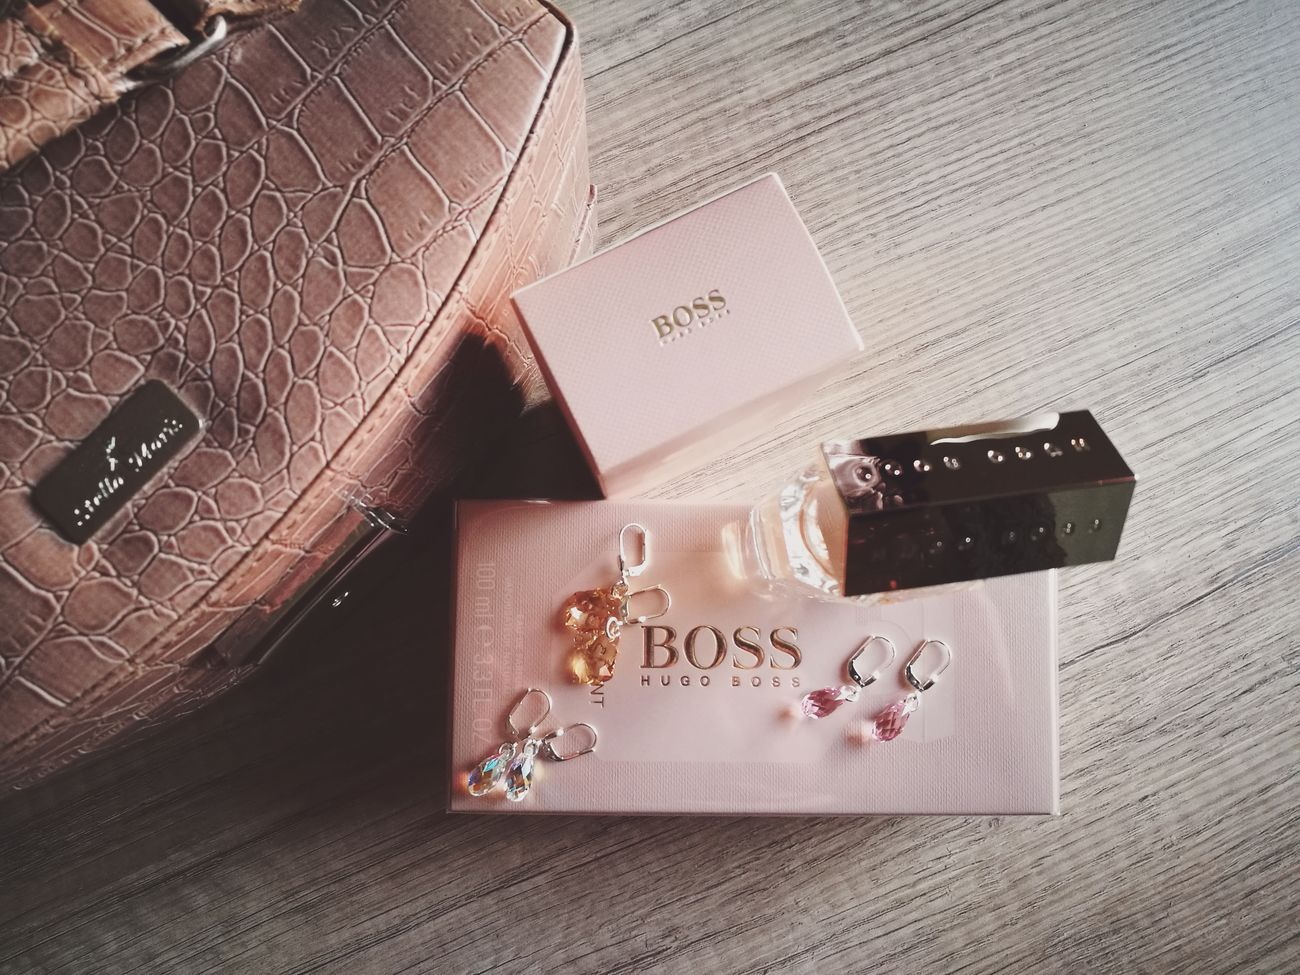 Hugo Boss Parfume Style Box Case Accessoires Woman Accessories Lifestyle Lifestyles Jewelry Box Large Group Of Objects Hugoboss Parfum Luxury Feminine Style Femininity Accesories Feminine  Close-up Beauty From Above  Styling Fragrance Fragrant Fragrances